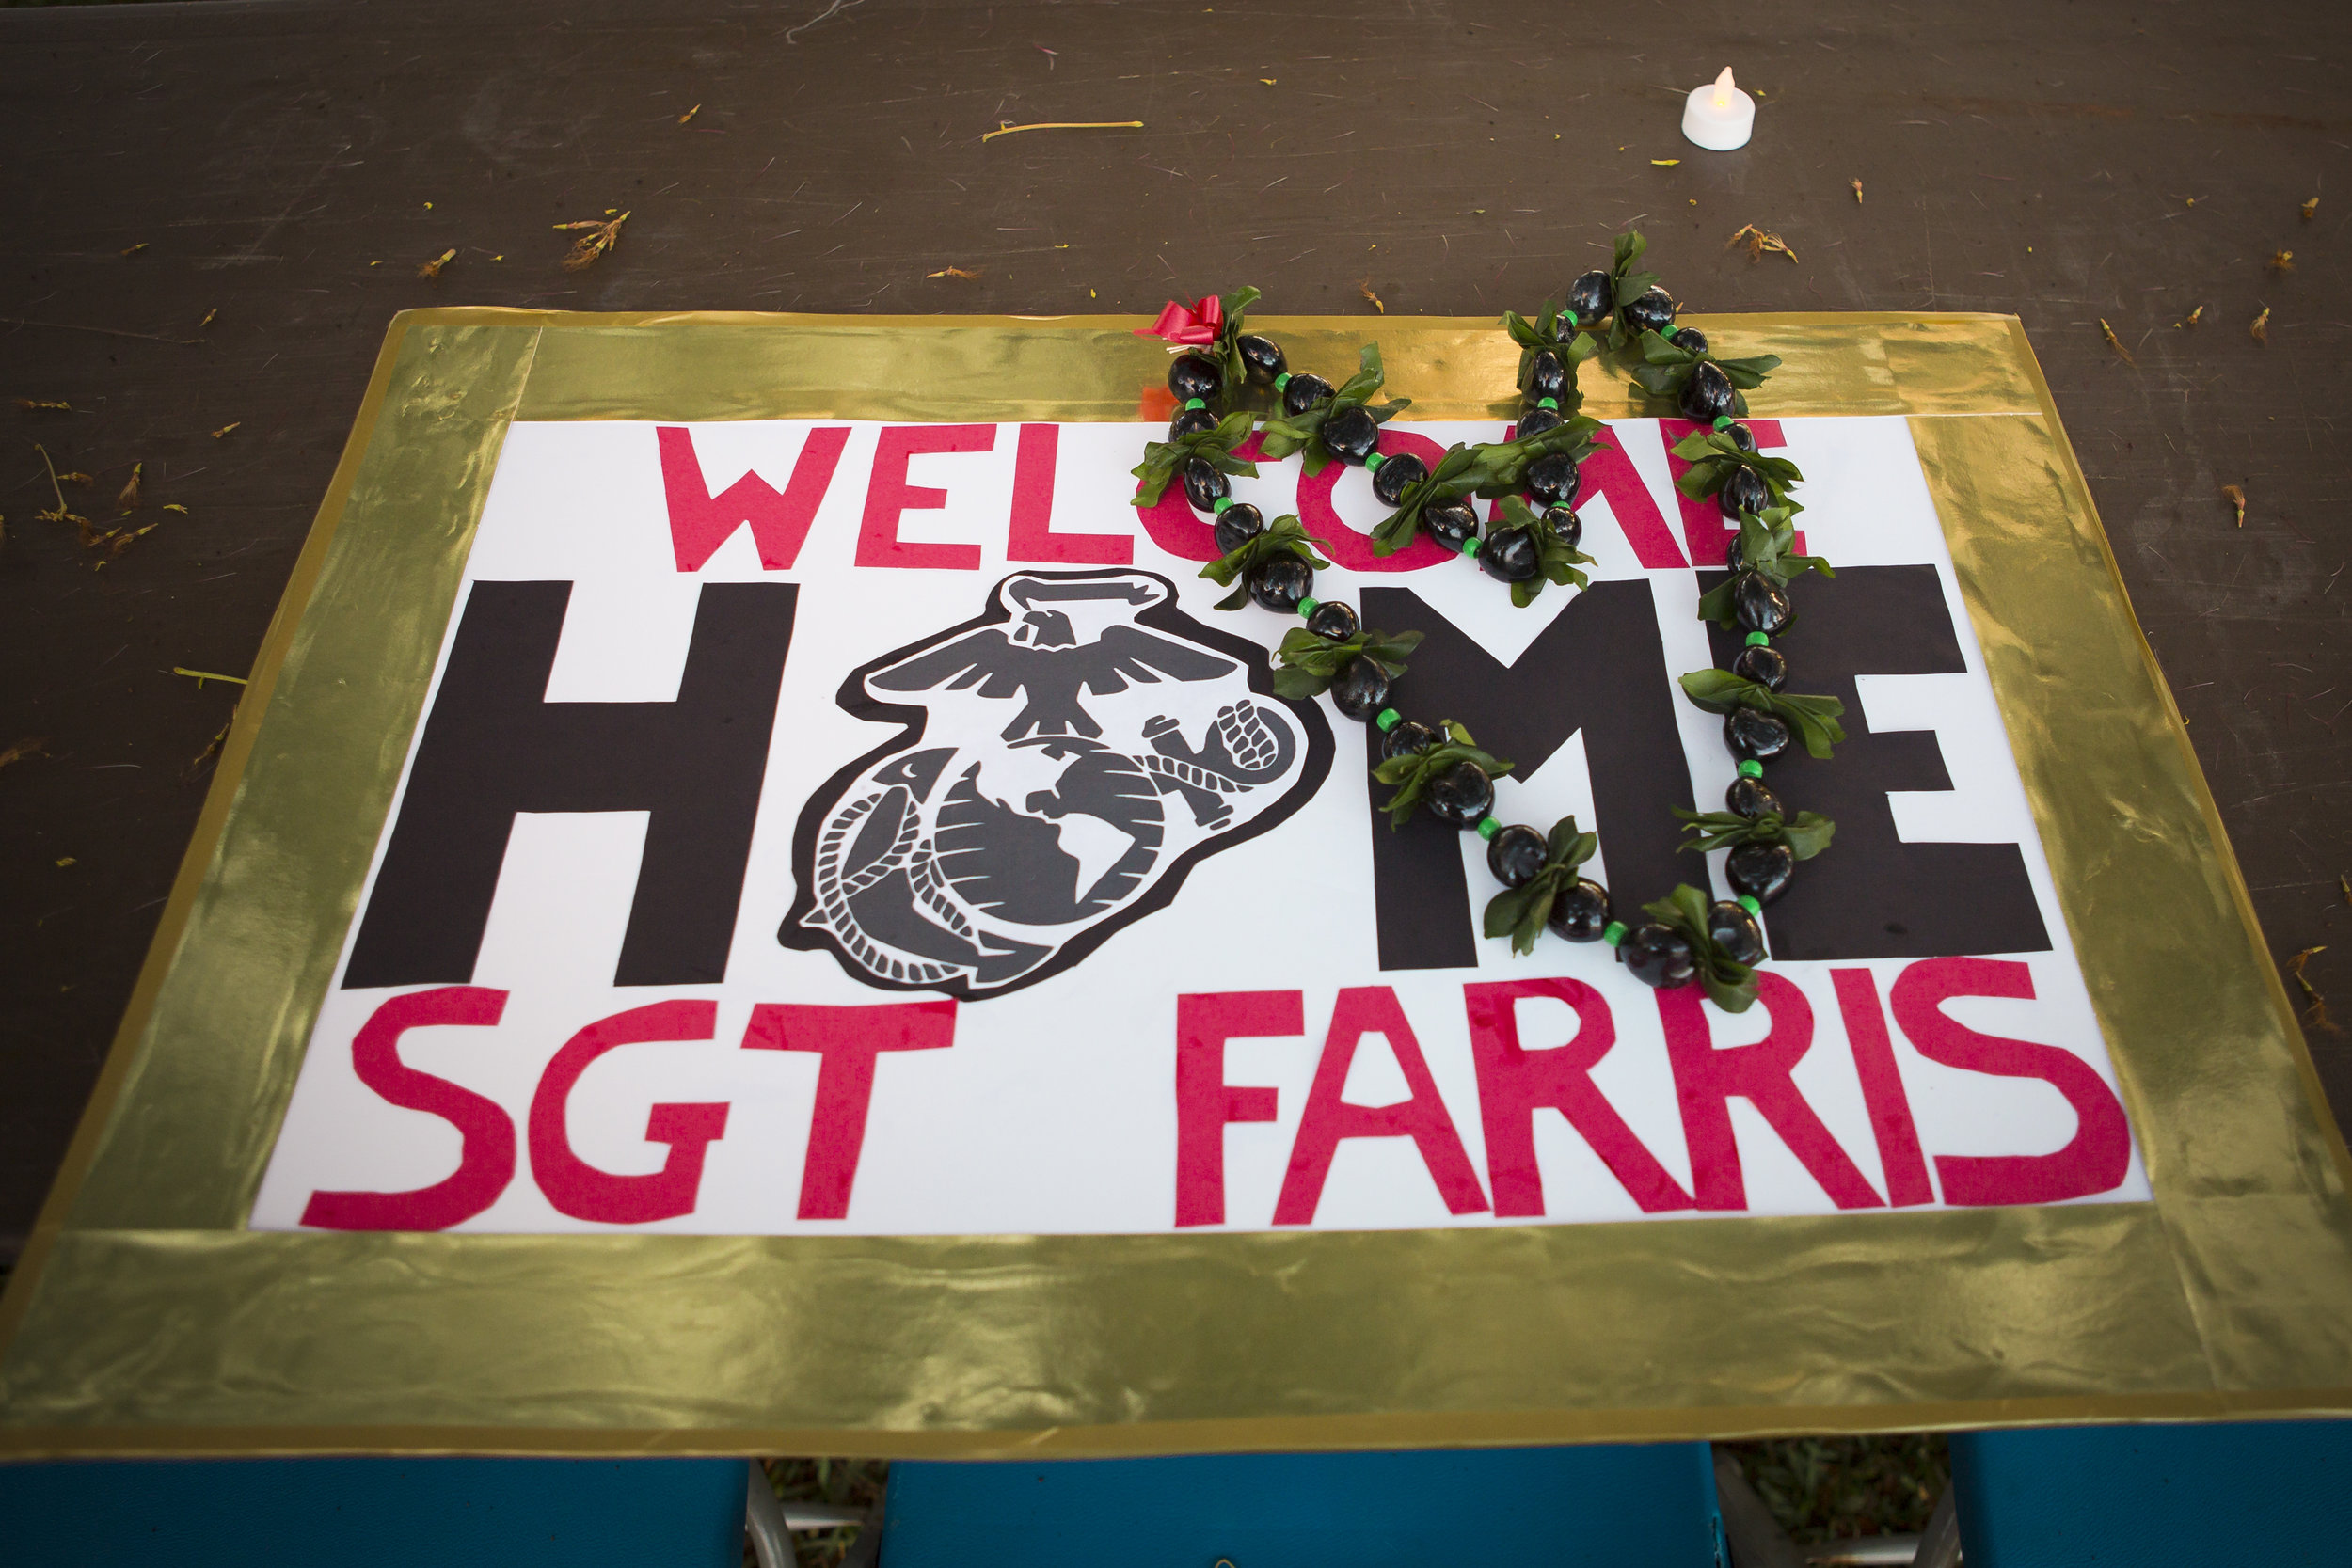 WelcomeHomeFarris-1.jpg